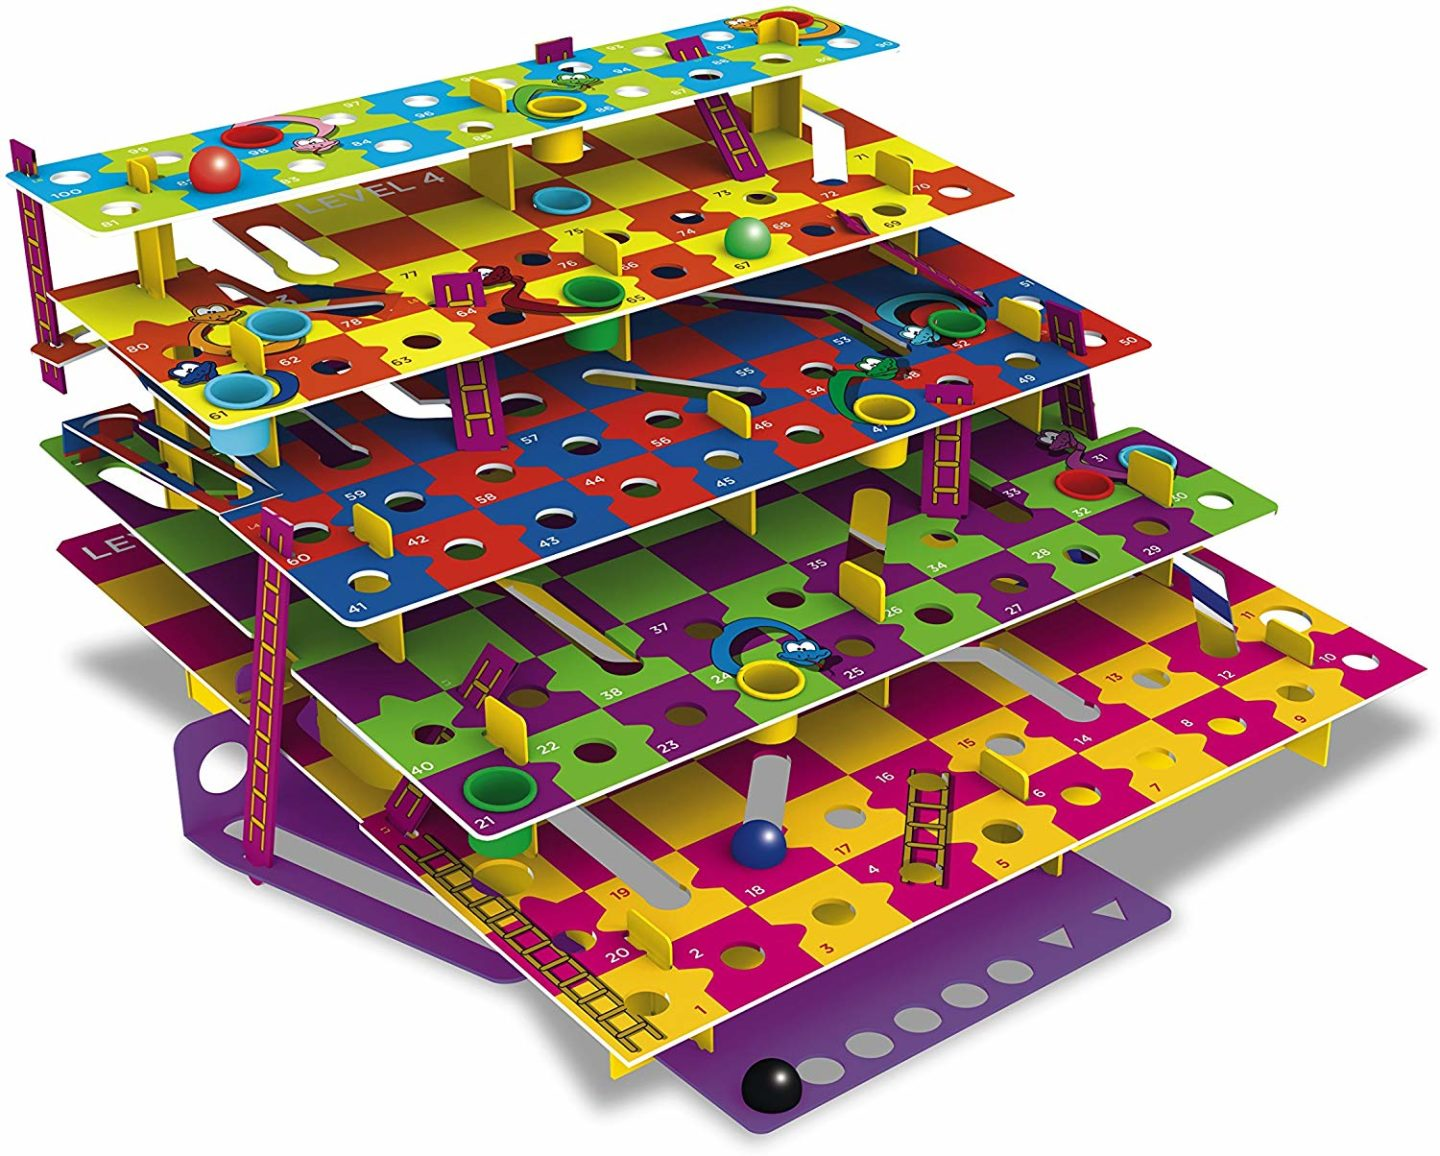 Inspiration for Christmas gifts for children - 10 things under £50 that I'm getting my 8 year old son and 5 year old daughter for Christmas this year. Multi-level snakes and ladders game.